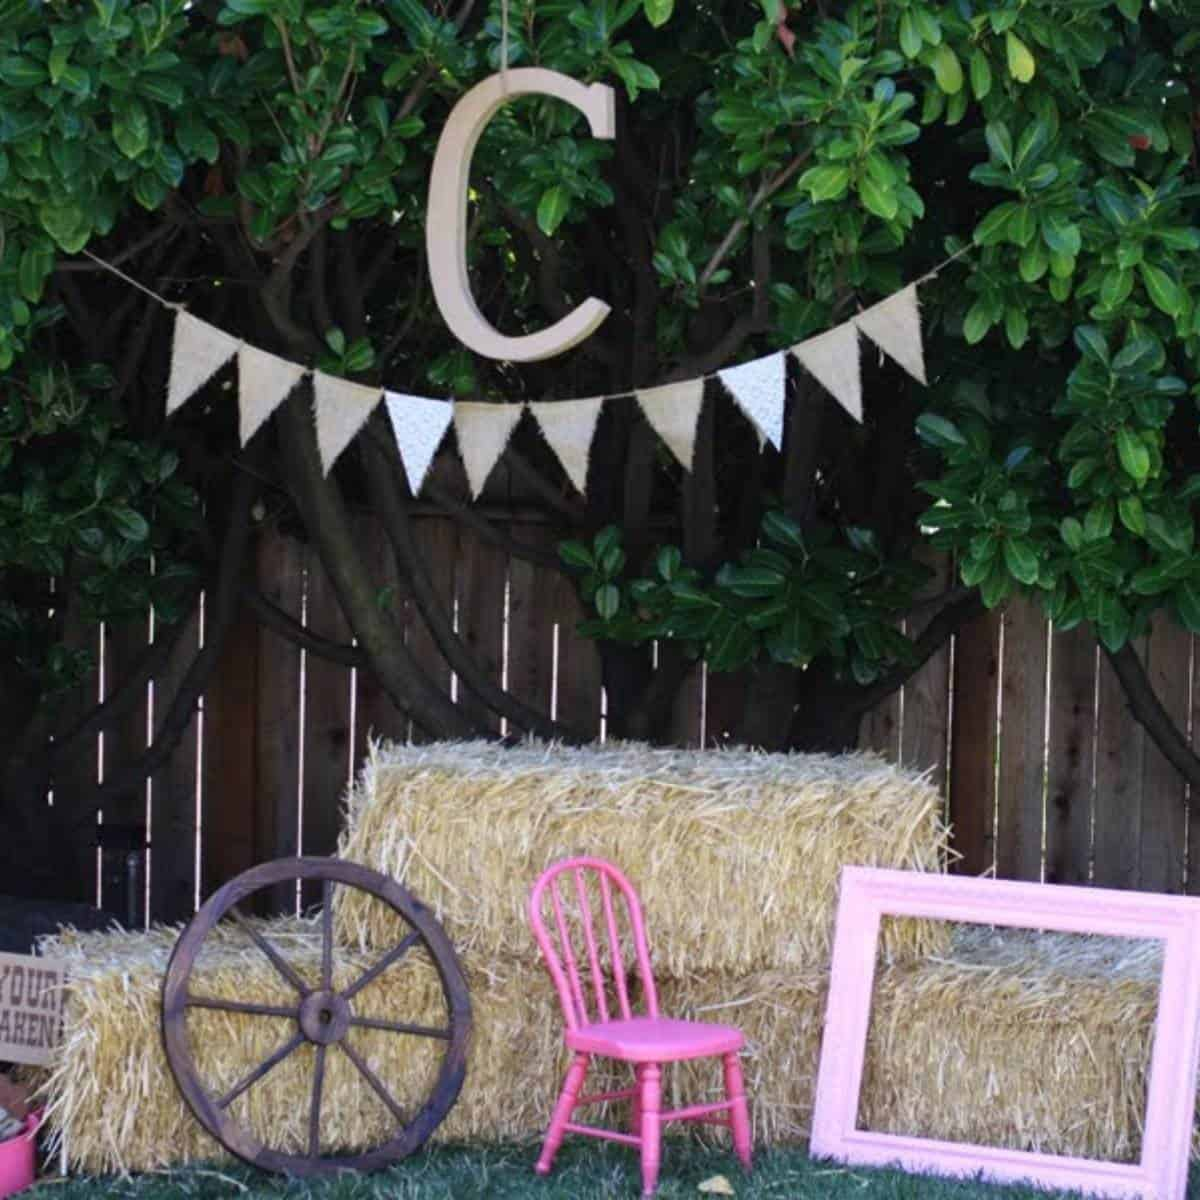 Photo booth setup with hay bales, a pink picture frame, a wagon wheel, and burlap bunting hanging from the tree above